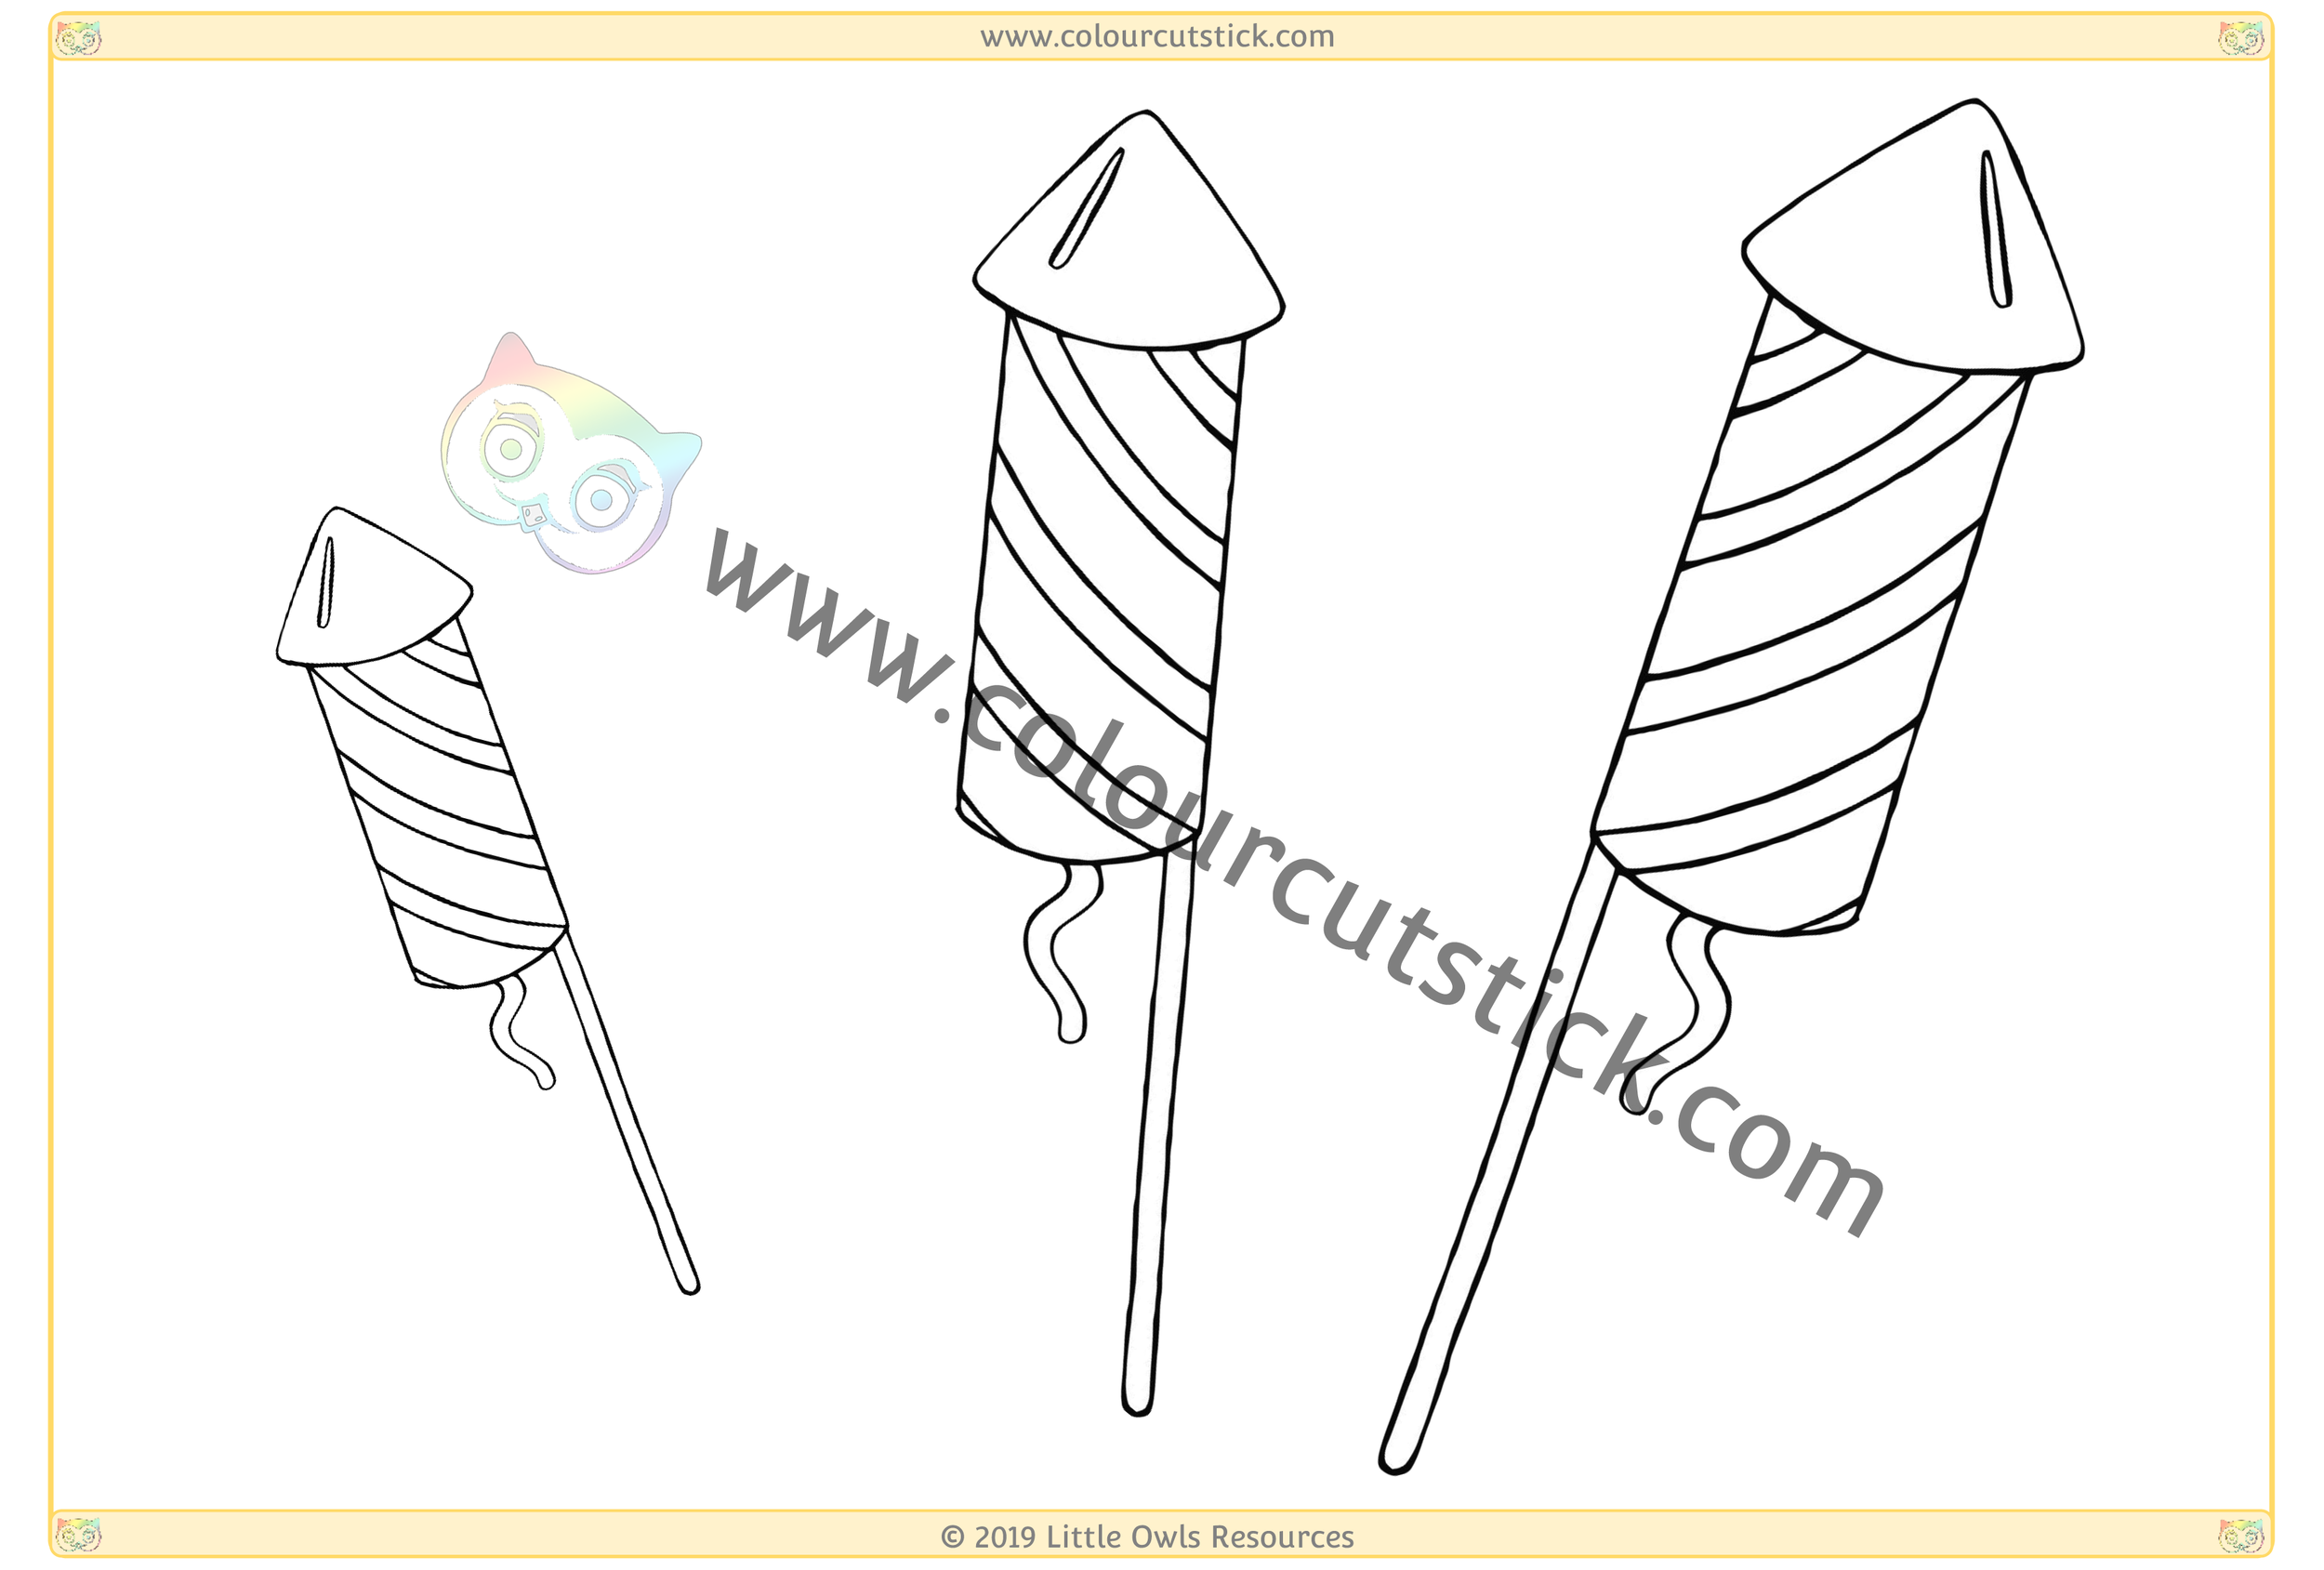 Fireworks Colouring CSS-3.png